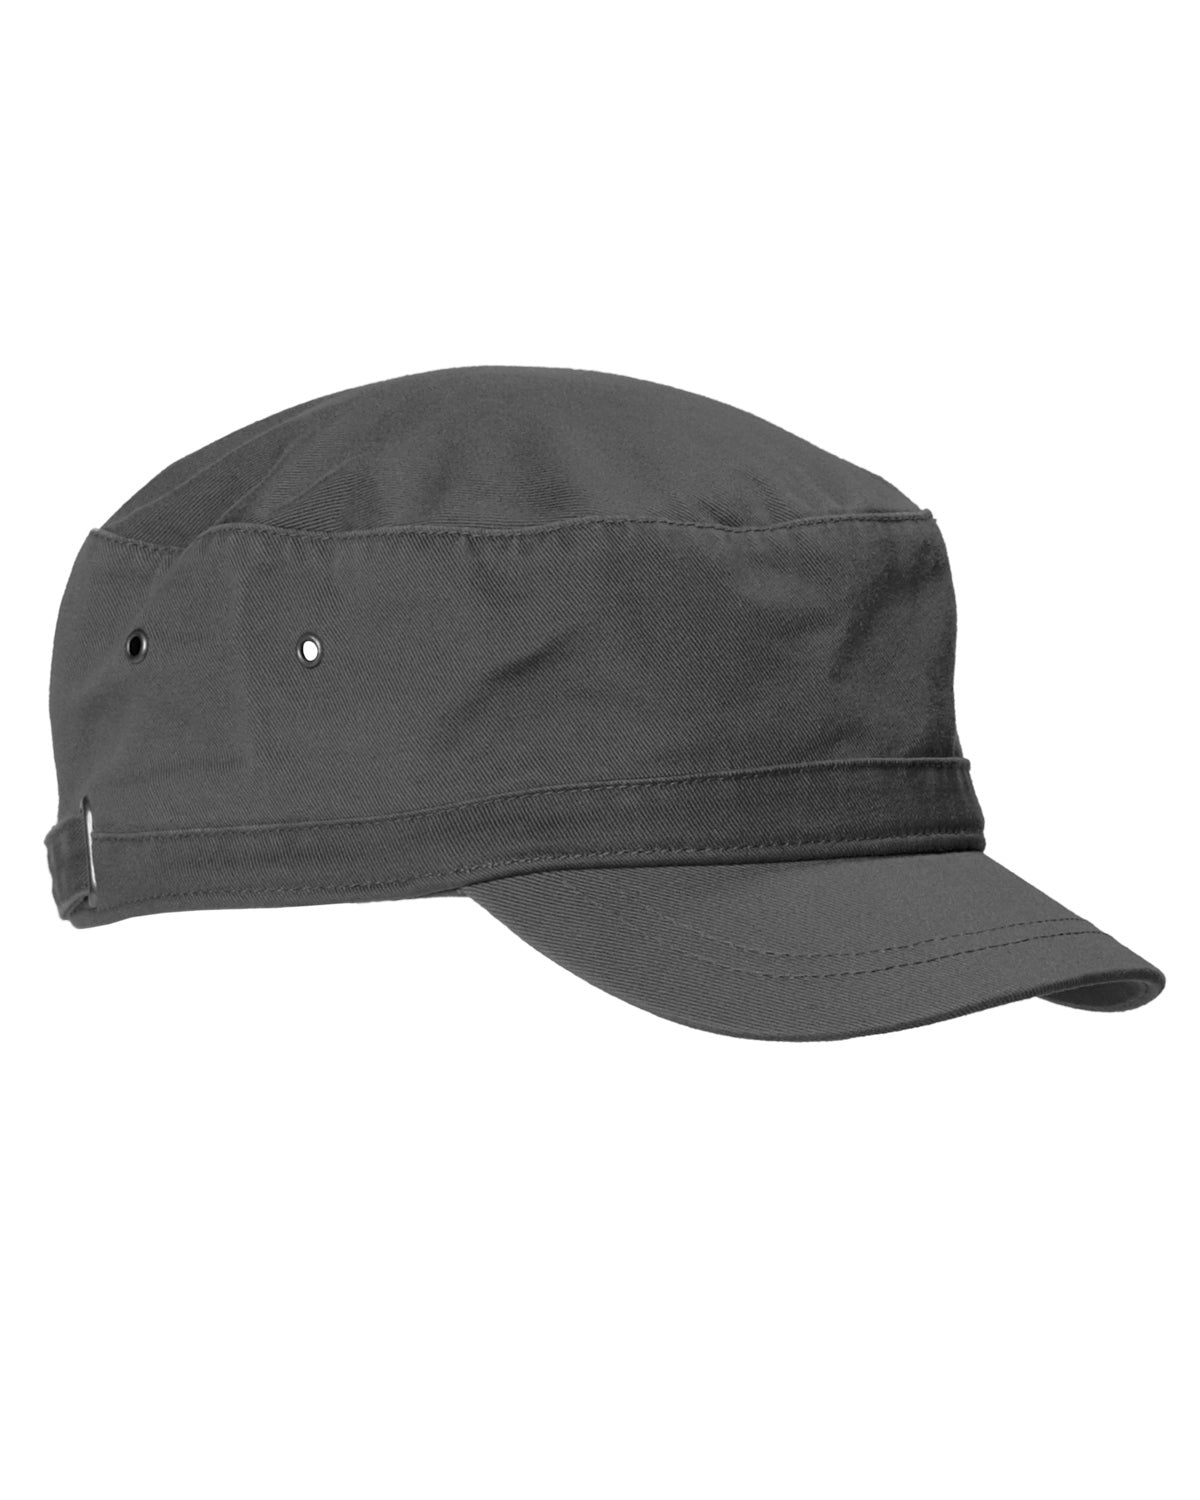 Short Bill Cadet Cap - Military Style BA501